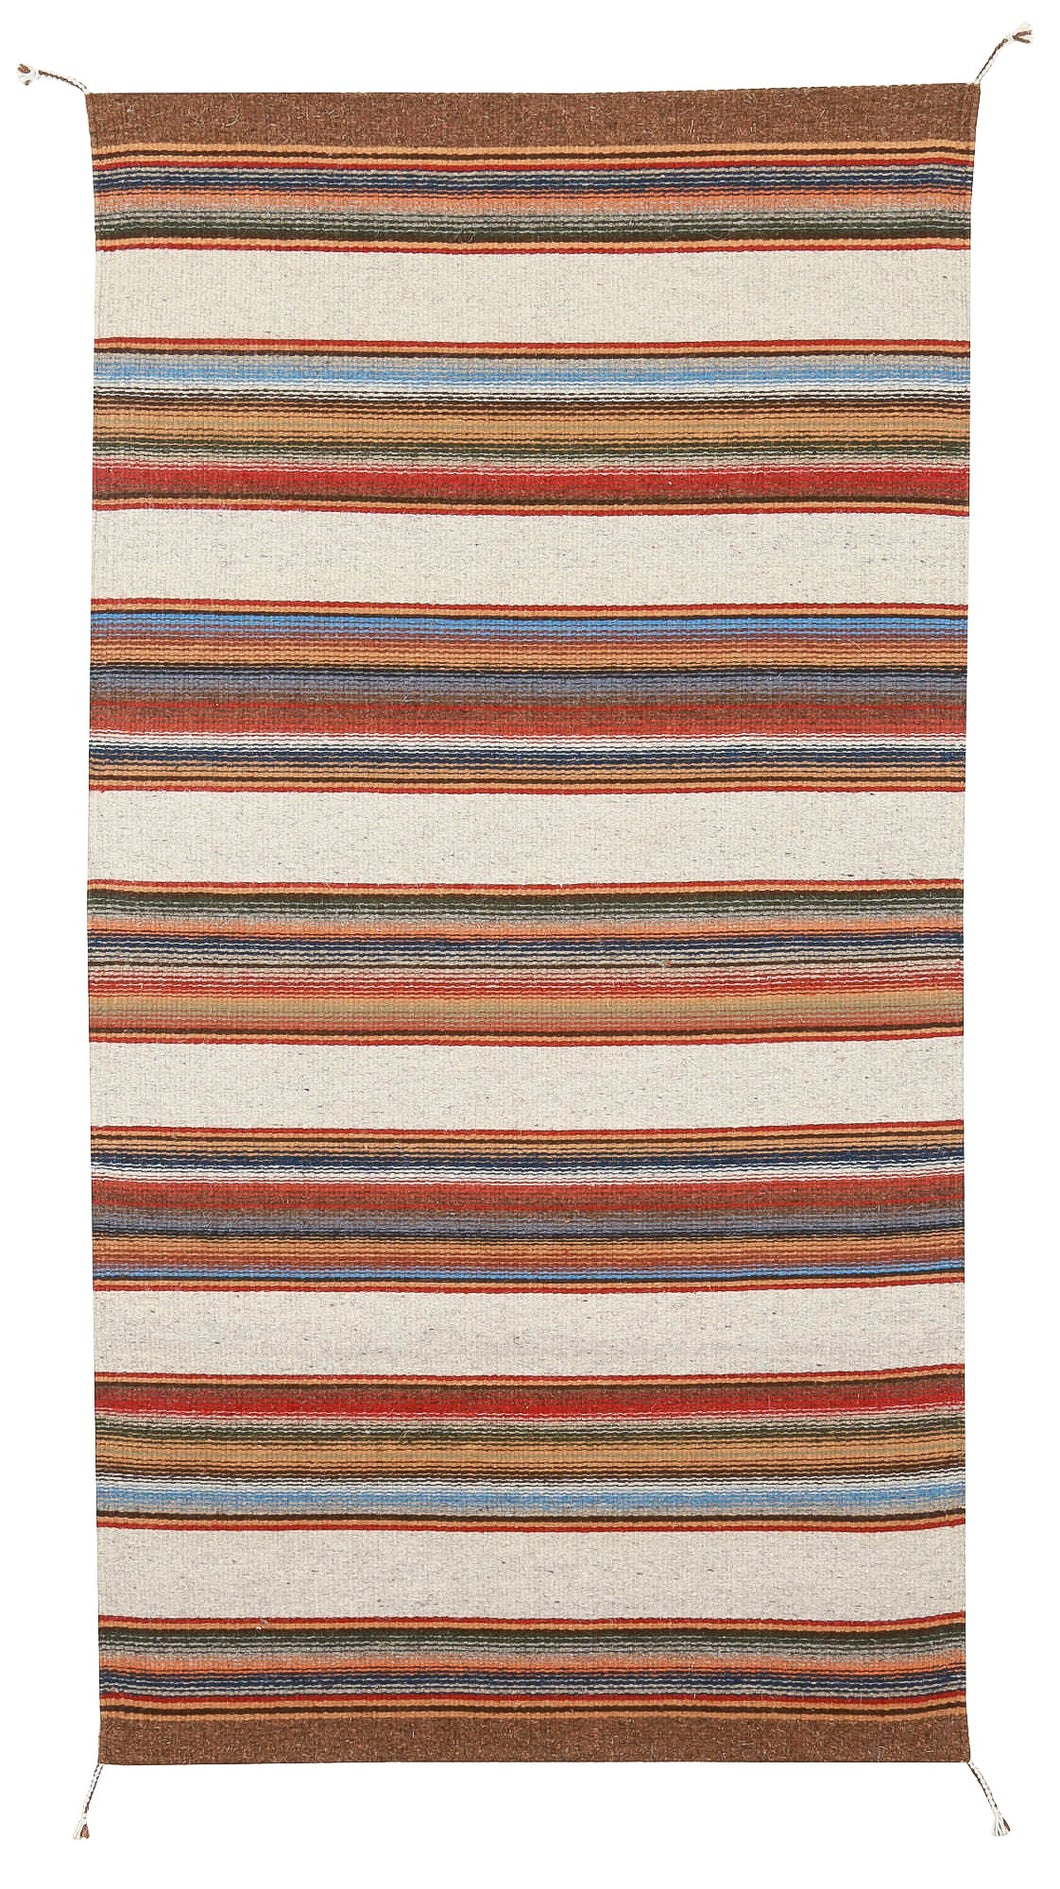 Handwoven Zapotec Indian Rug - Lawson Mesa Wool Oaxacan Textile